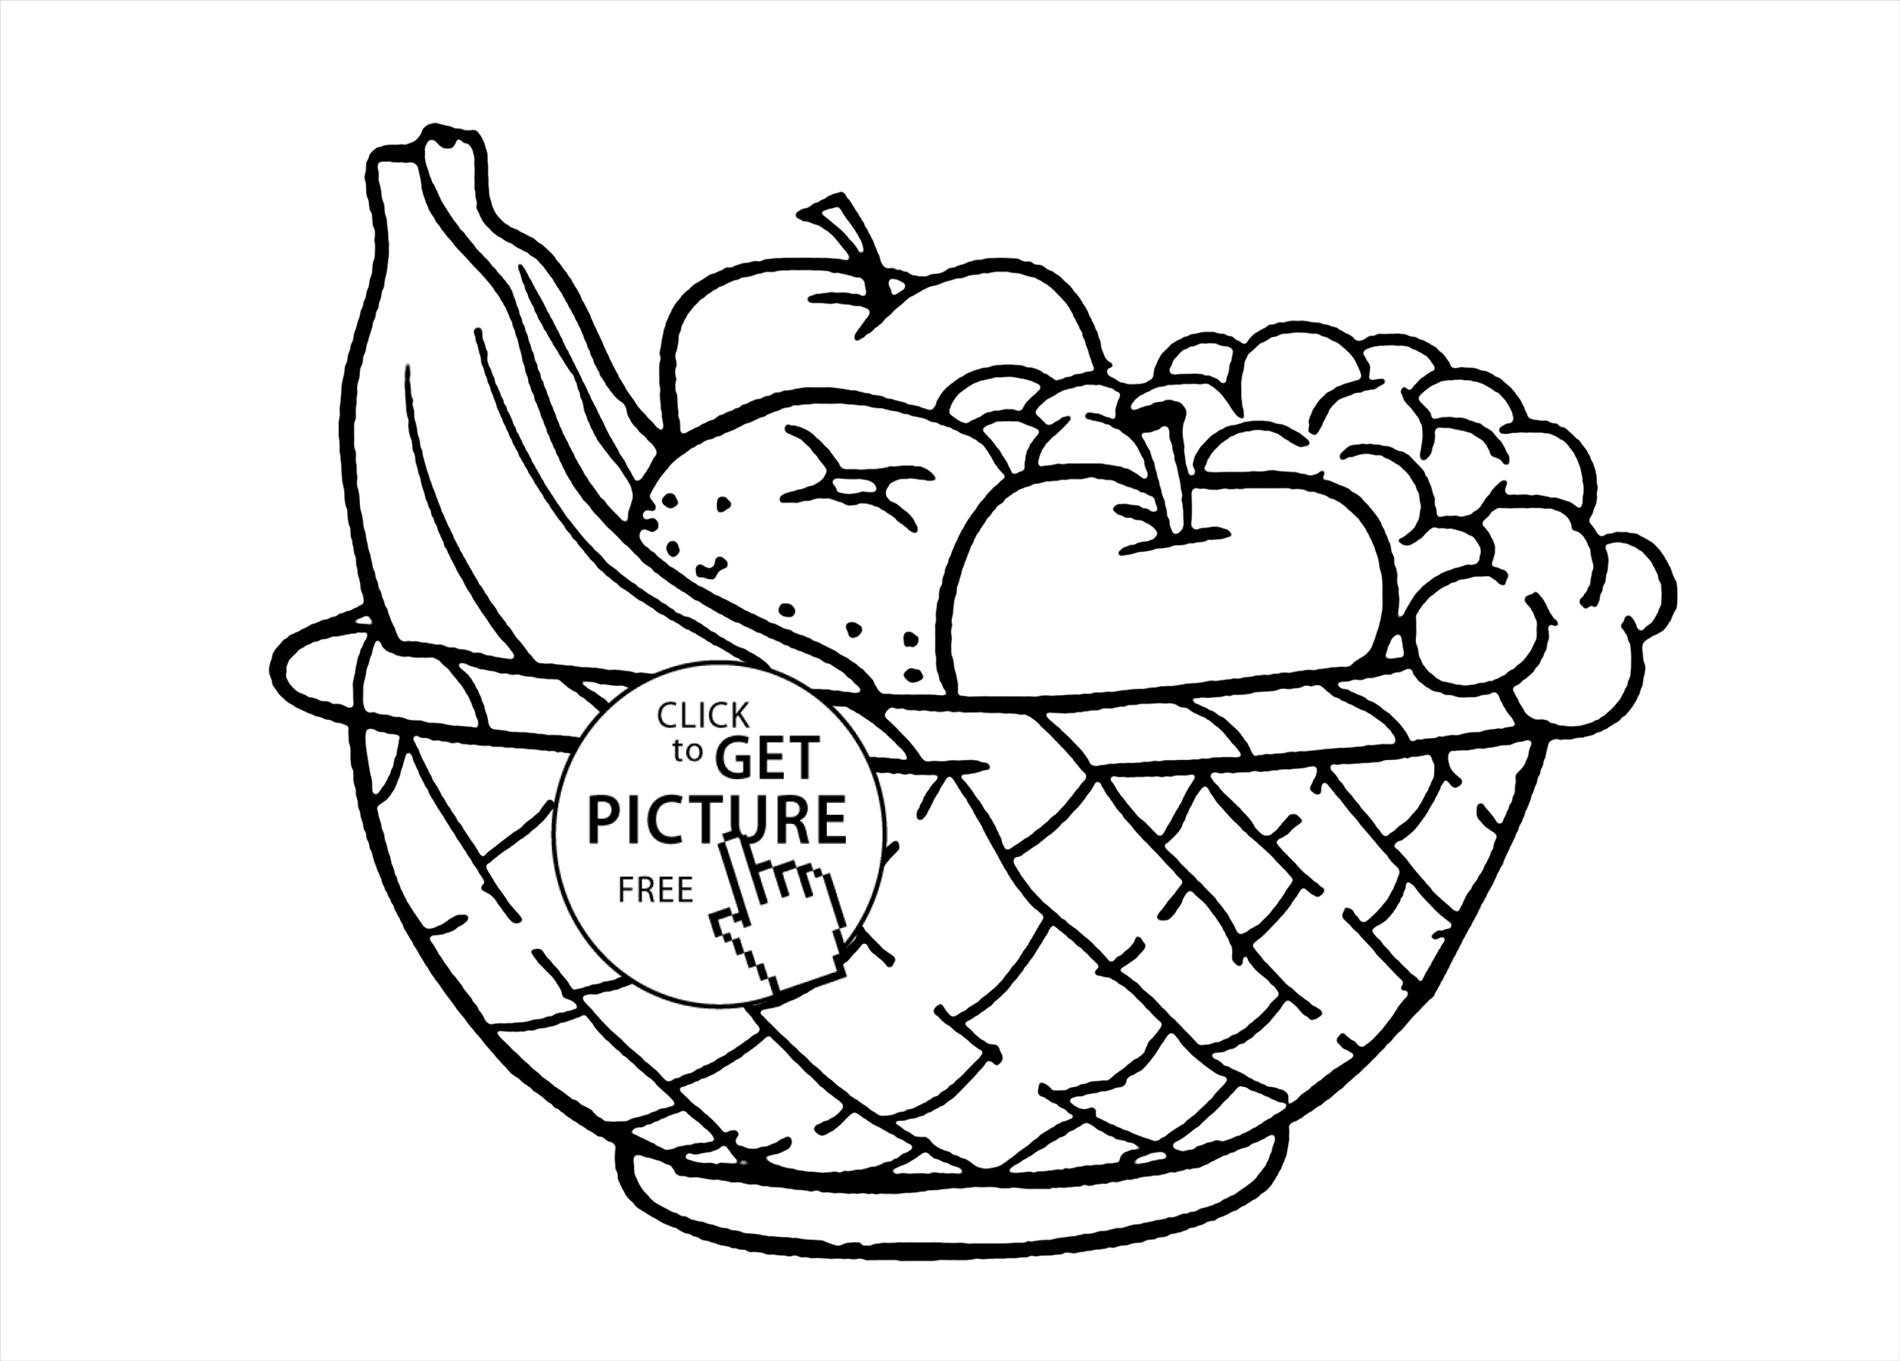 how to draw a bowl of fruit step by step bowl of fruit february paynes fine arts classes mr paynes to how draw of a step bowl fruit step by